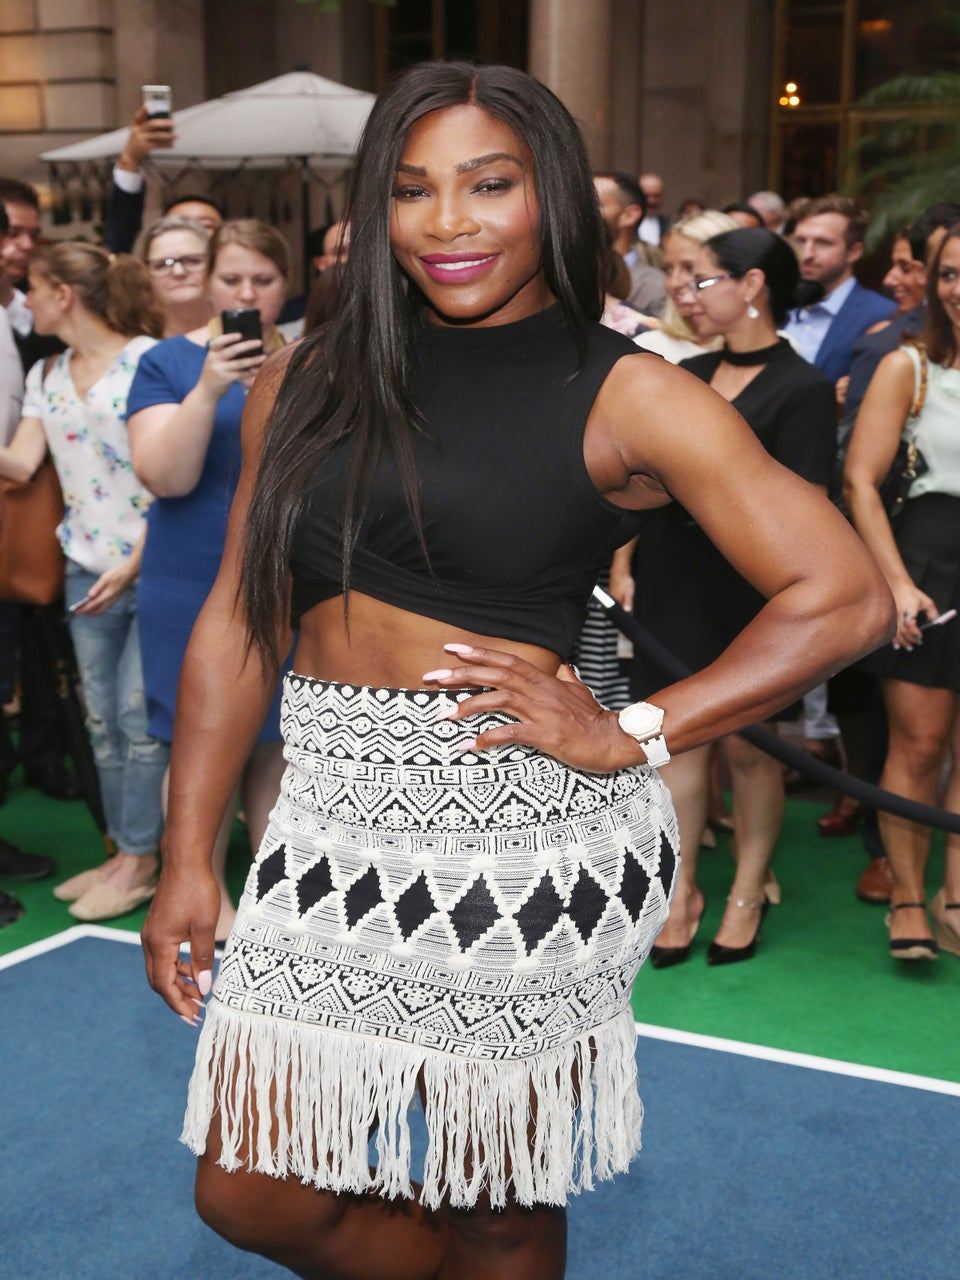 Serena Williams Engaged to Reddit Co-Founder Alexis Ohanian – and Announces on Reddit!